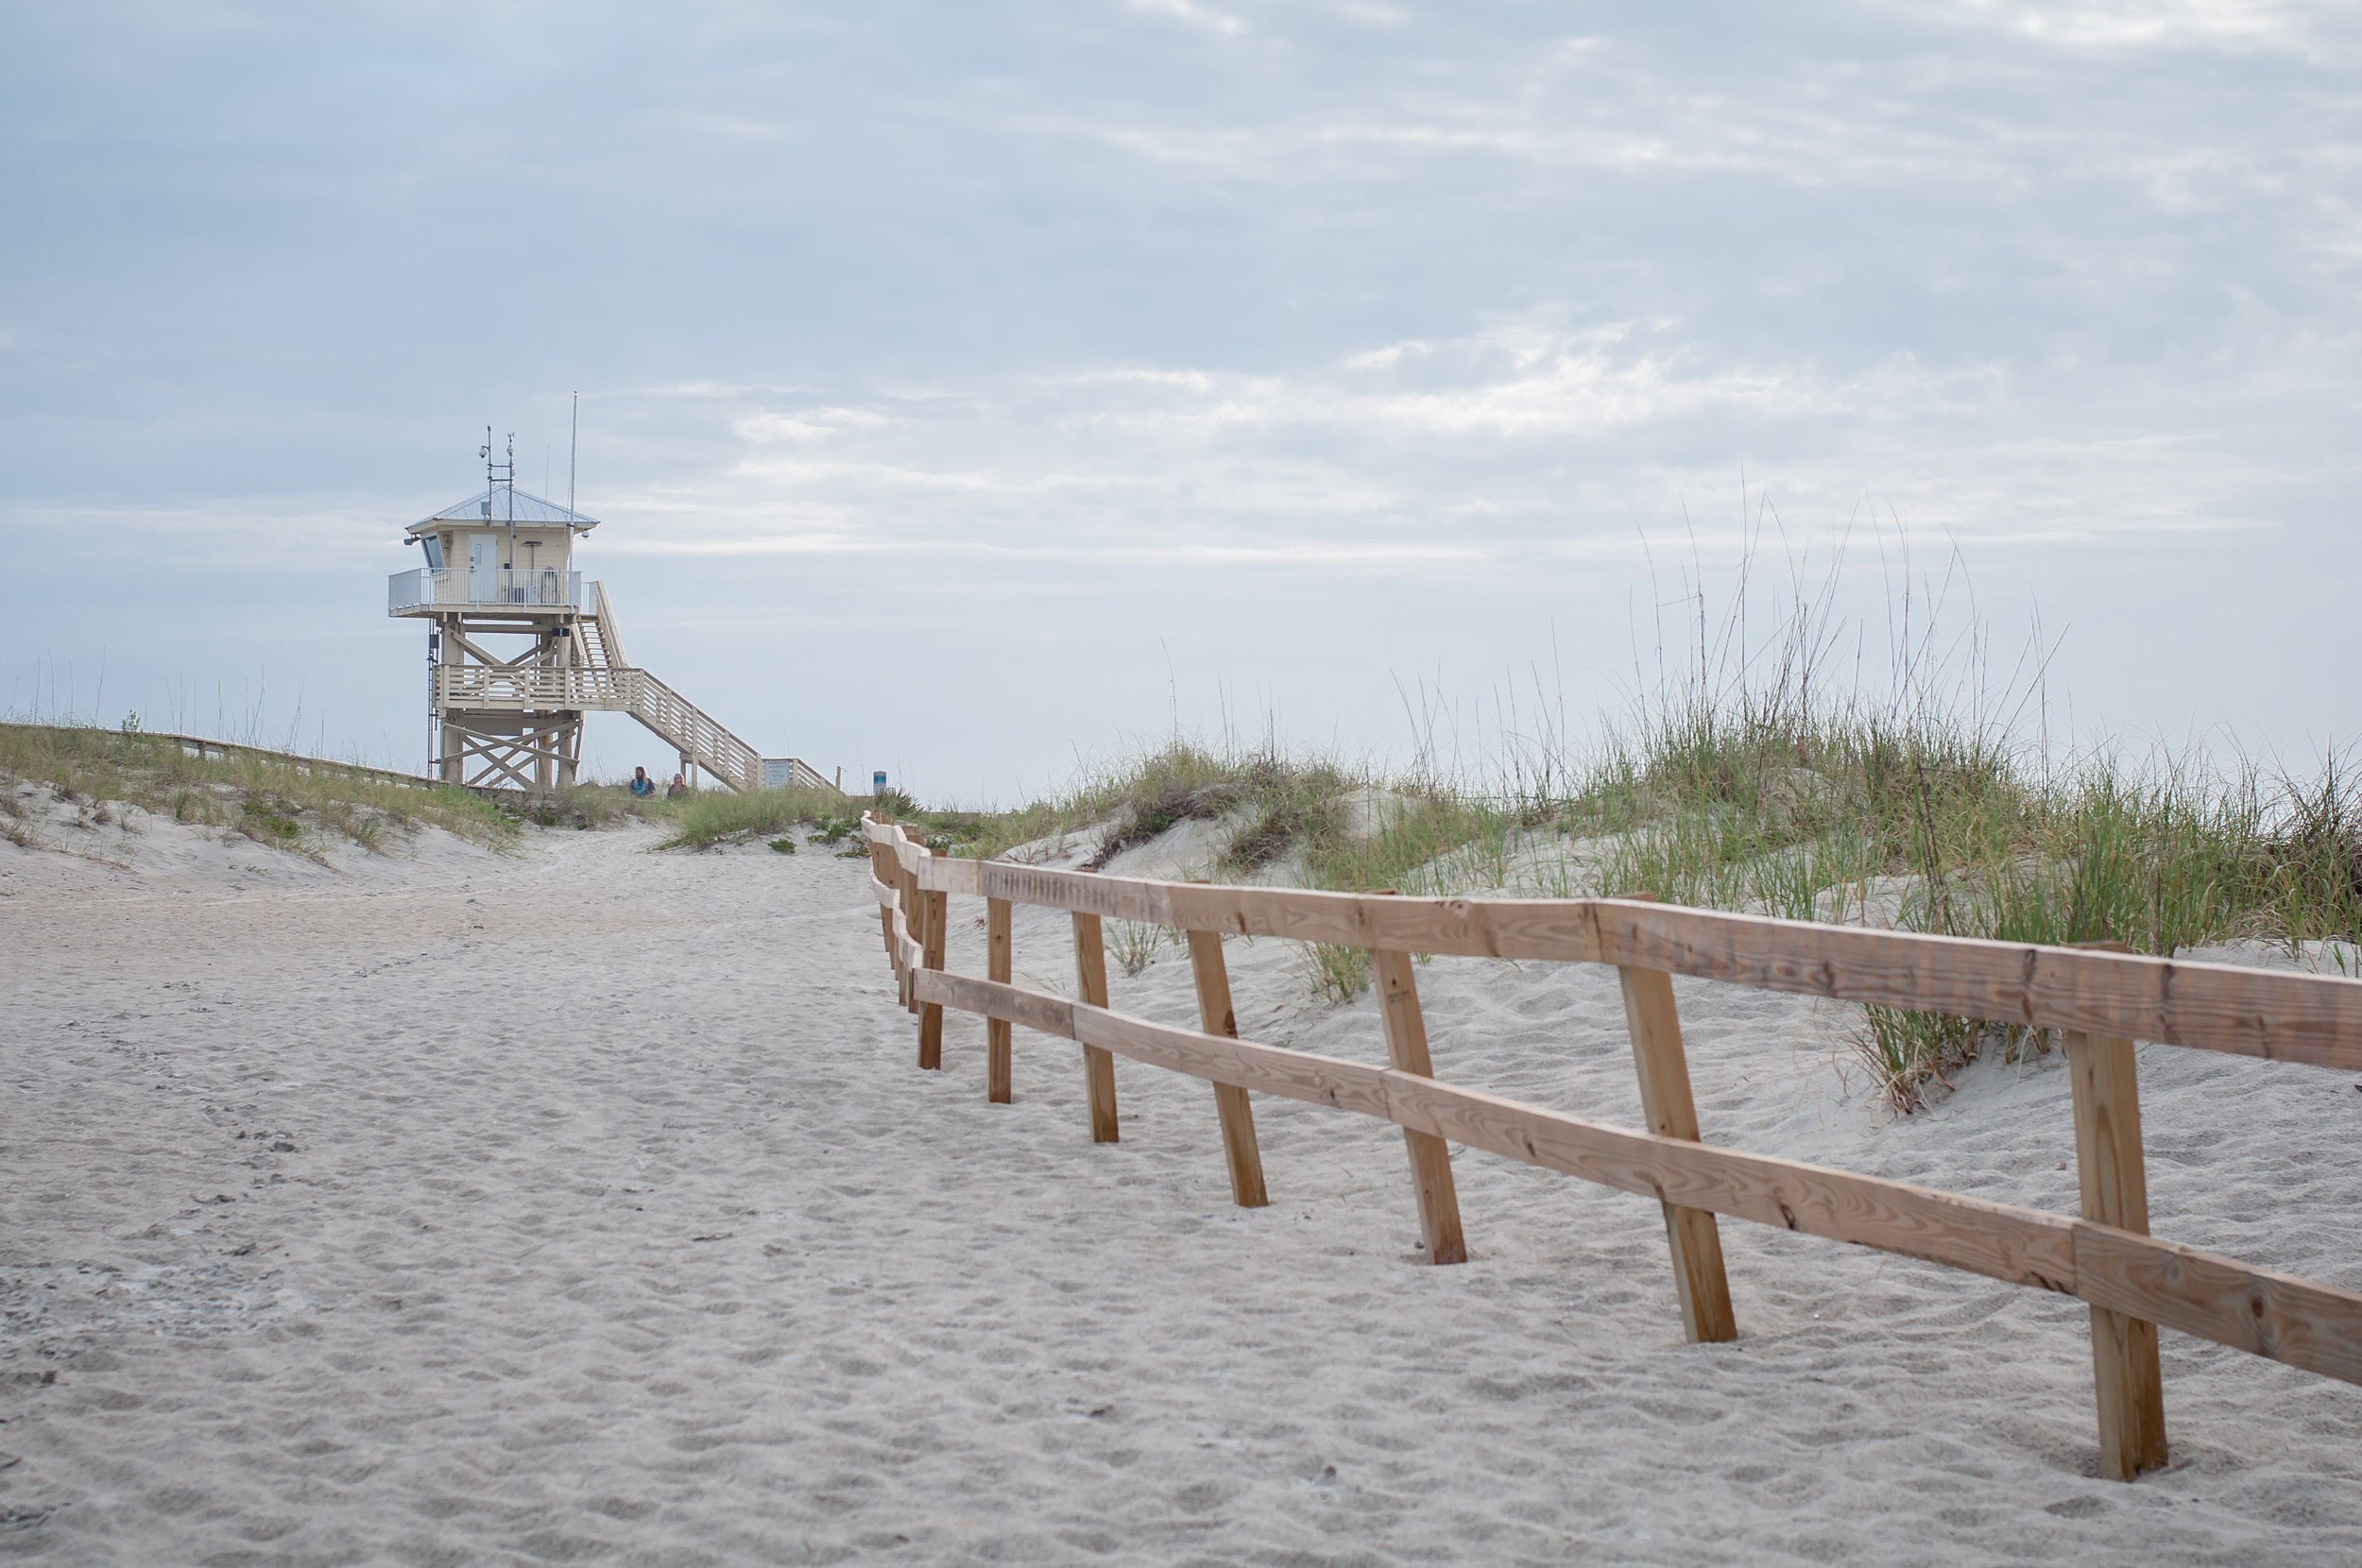 Ponce Inlet Beach.  My favorite beach, so far! It feels like home when I go to Ponce Inlet. The widespread of beautifully soft, white sands, and the stunning views of dolphins playing in the water, make this beach my absolute favorite.